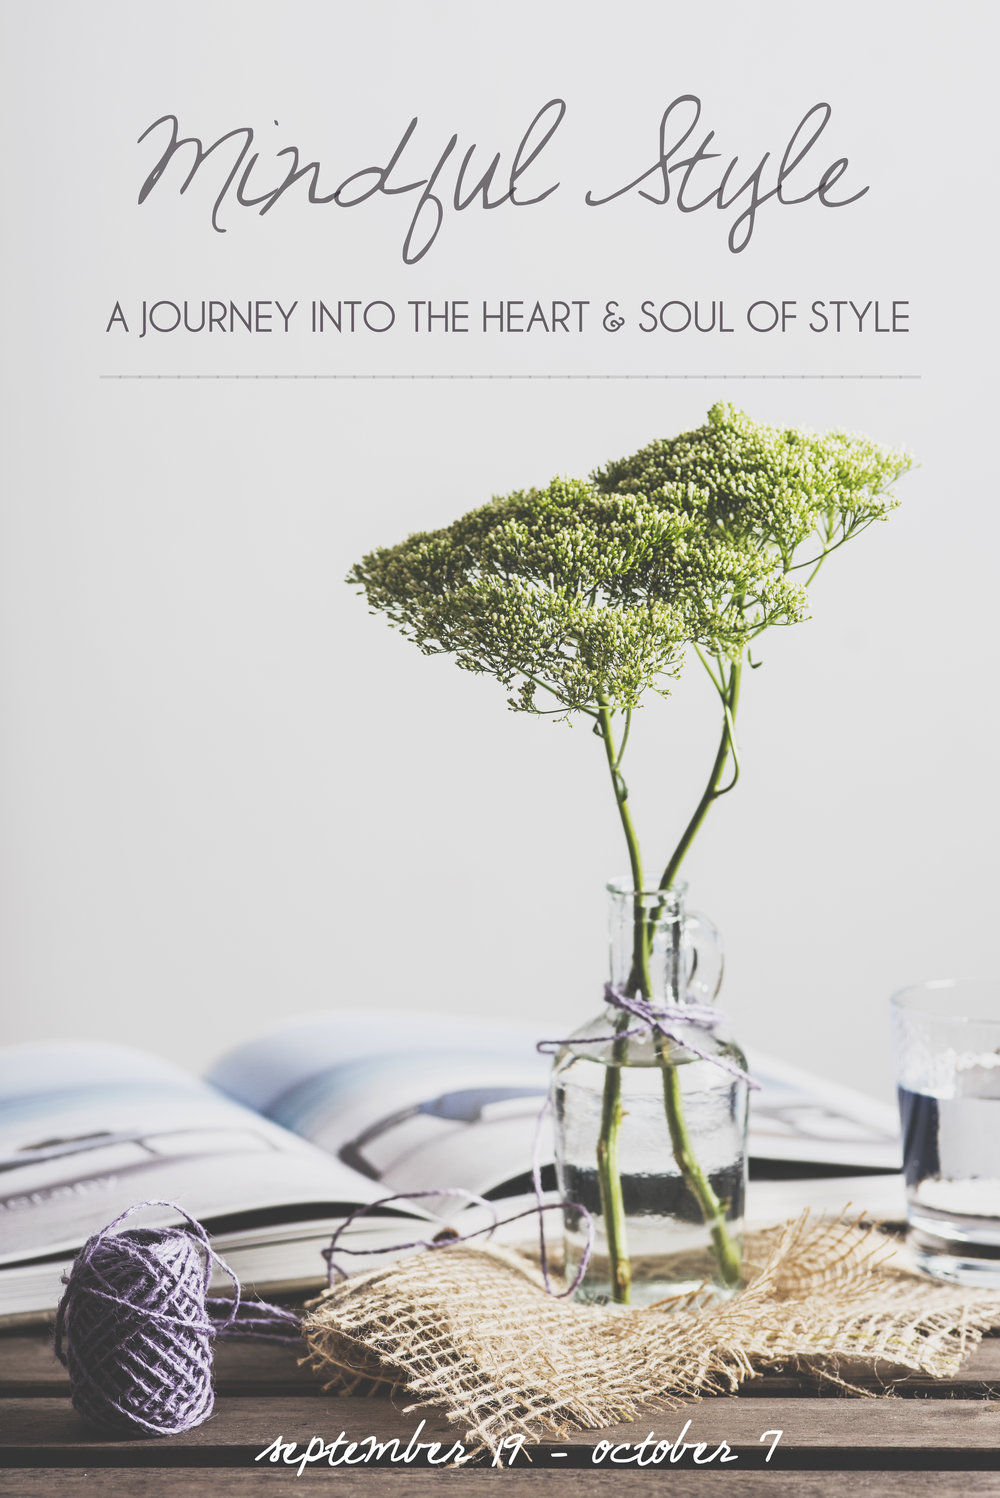 Mindful Style: A 3-Week Journey into the Heart and Soul of Style, September 19 - October 7